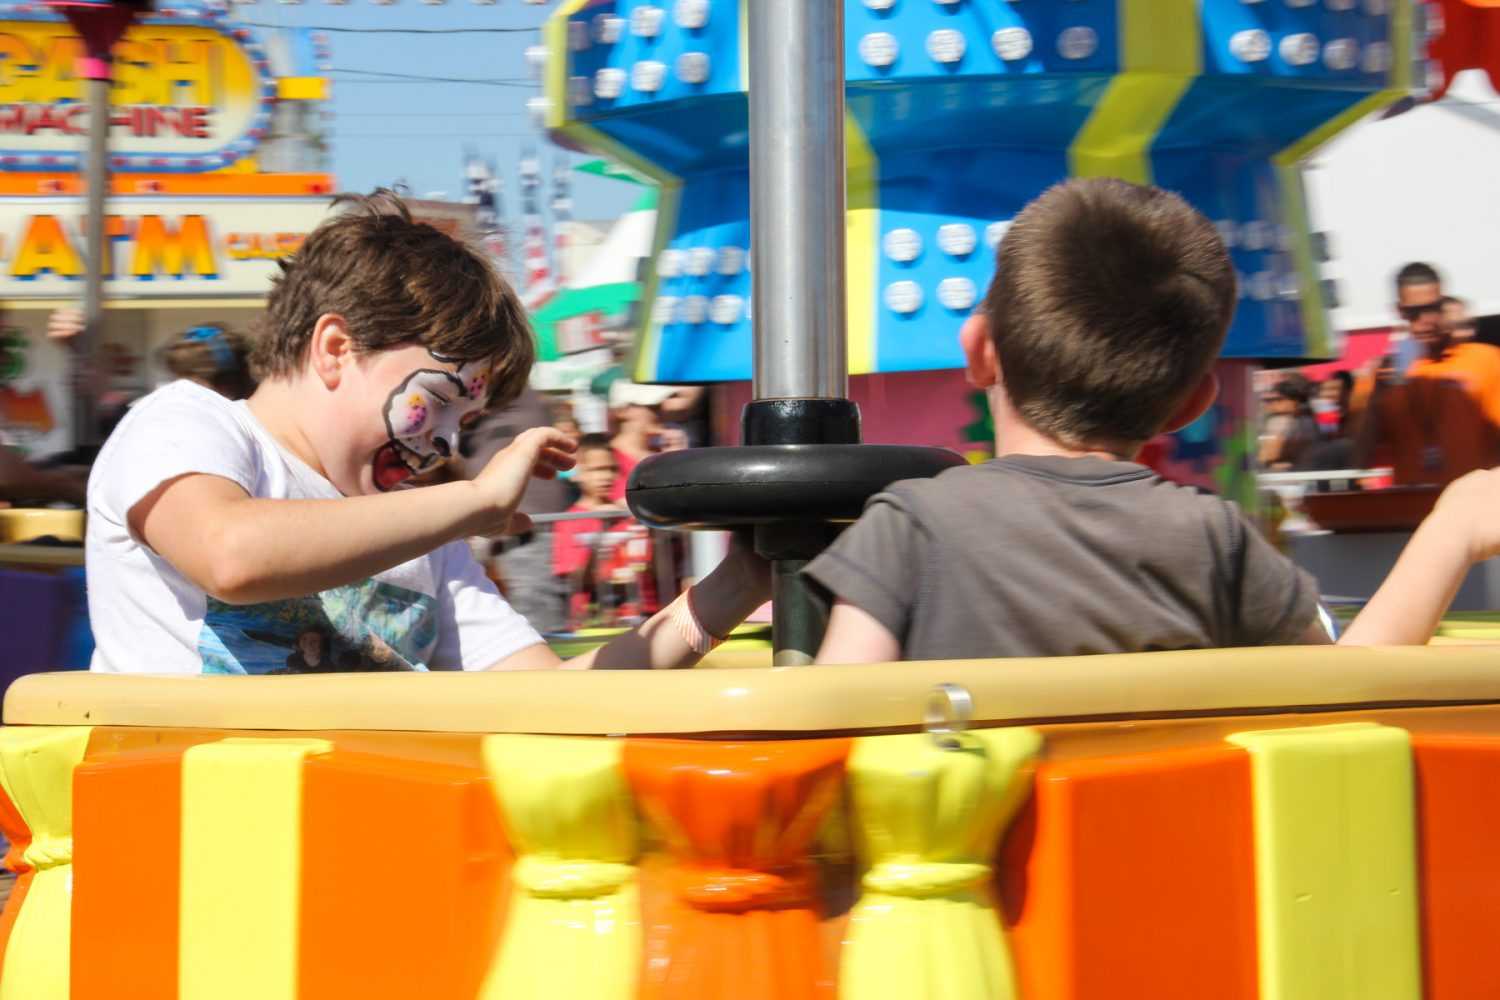 10-year-old Kaleigh, left, and her brother Kyle, 5, ride on a carnival ride at the Florida Strawberry Festival on Sunday afternoon, Mar. 9, 2014